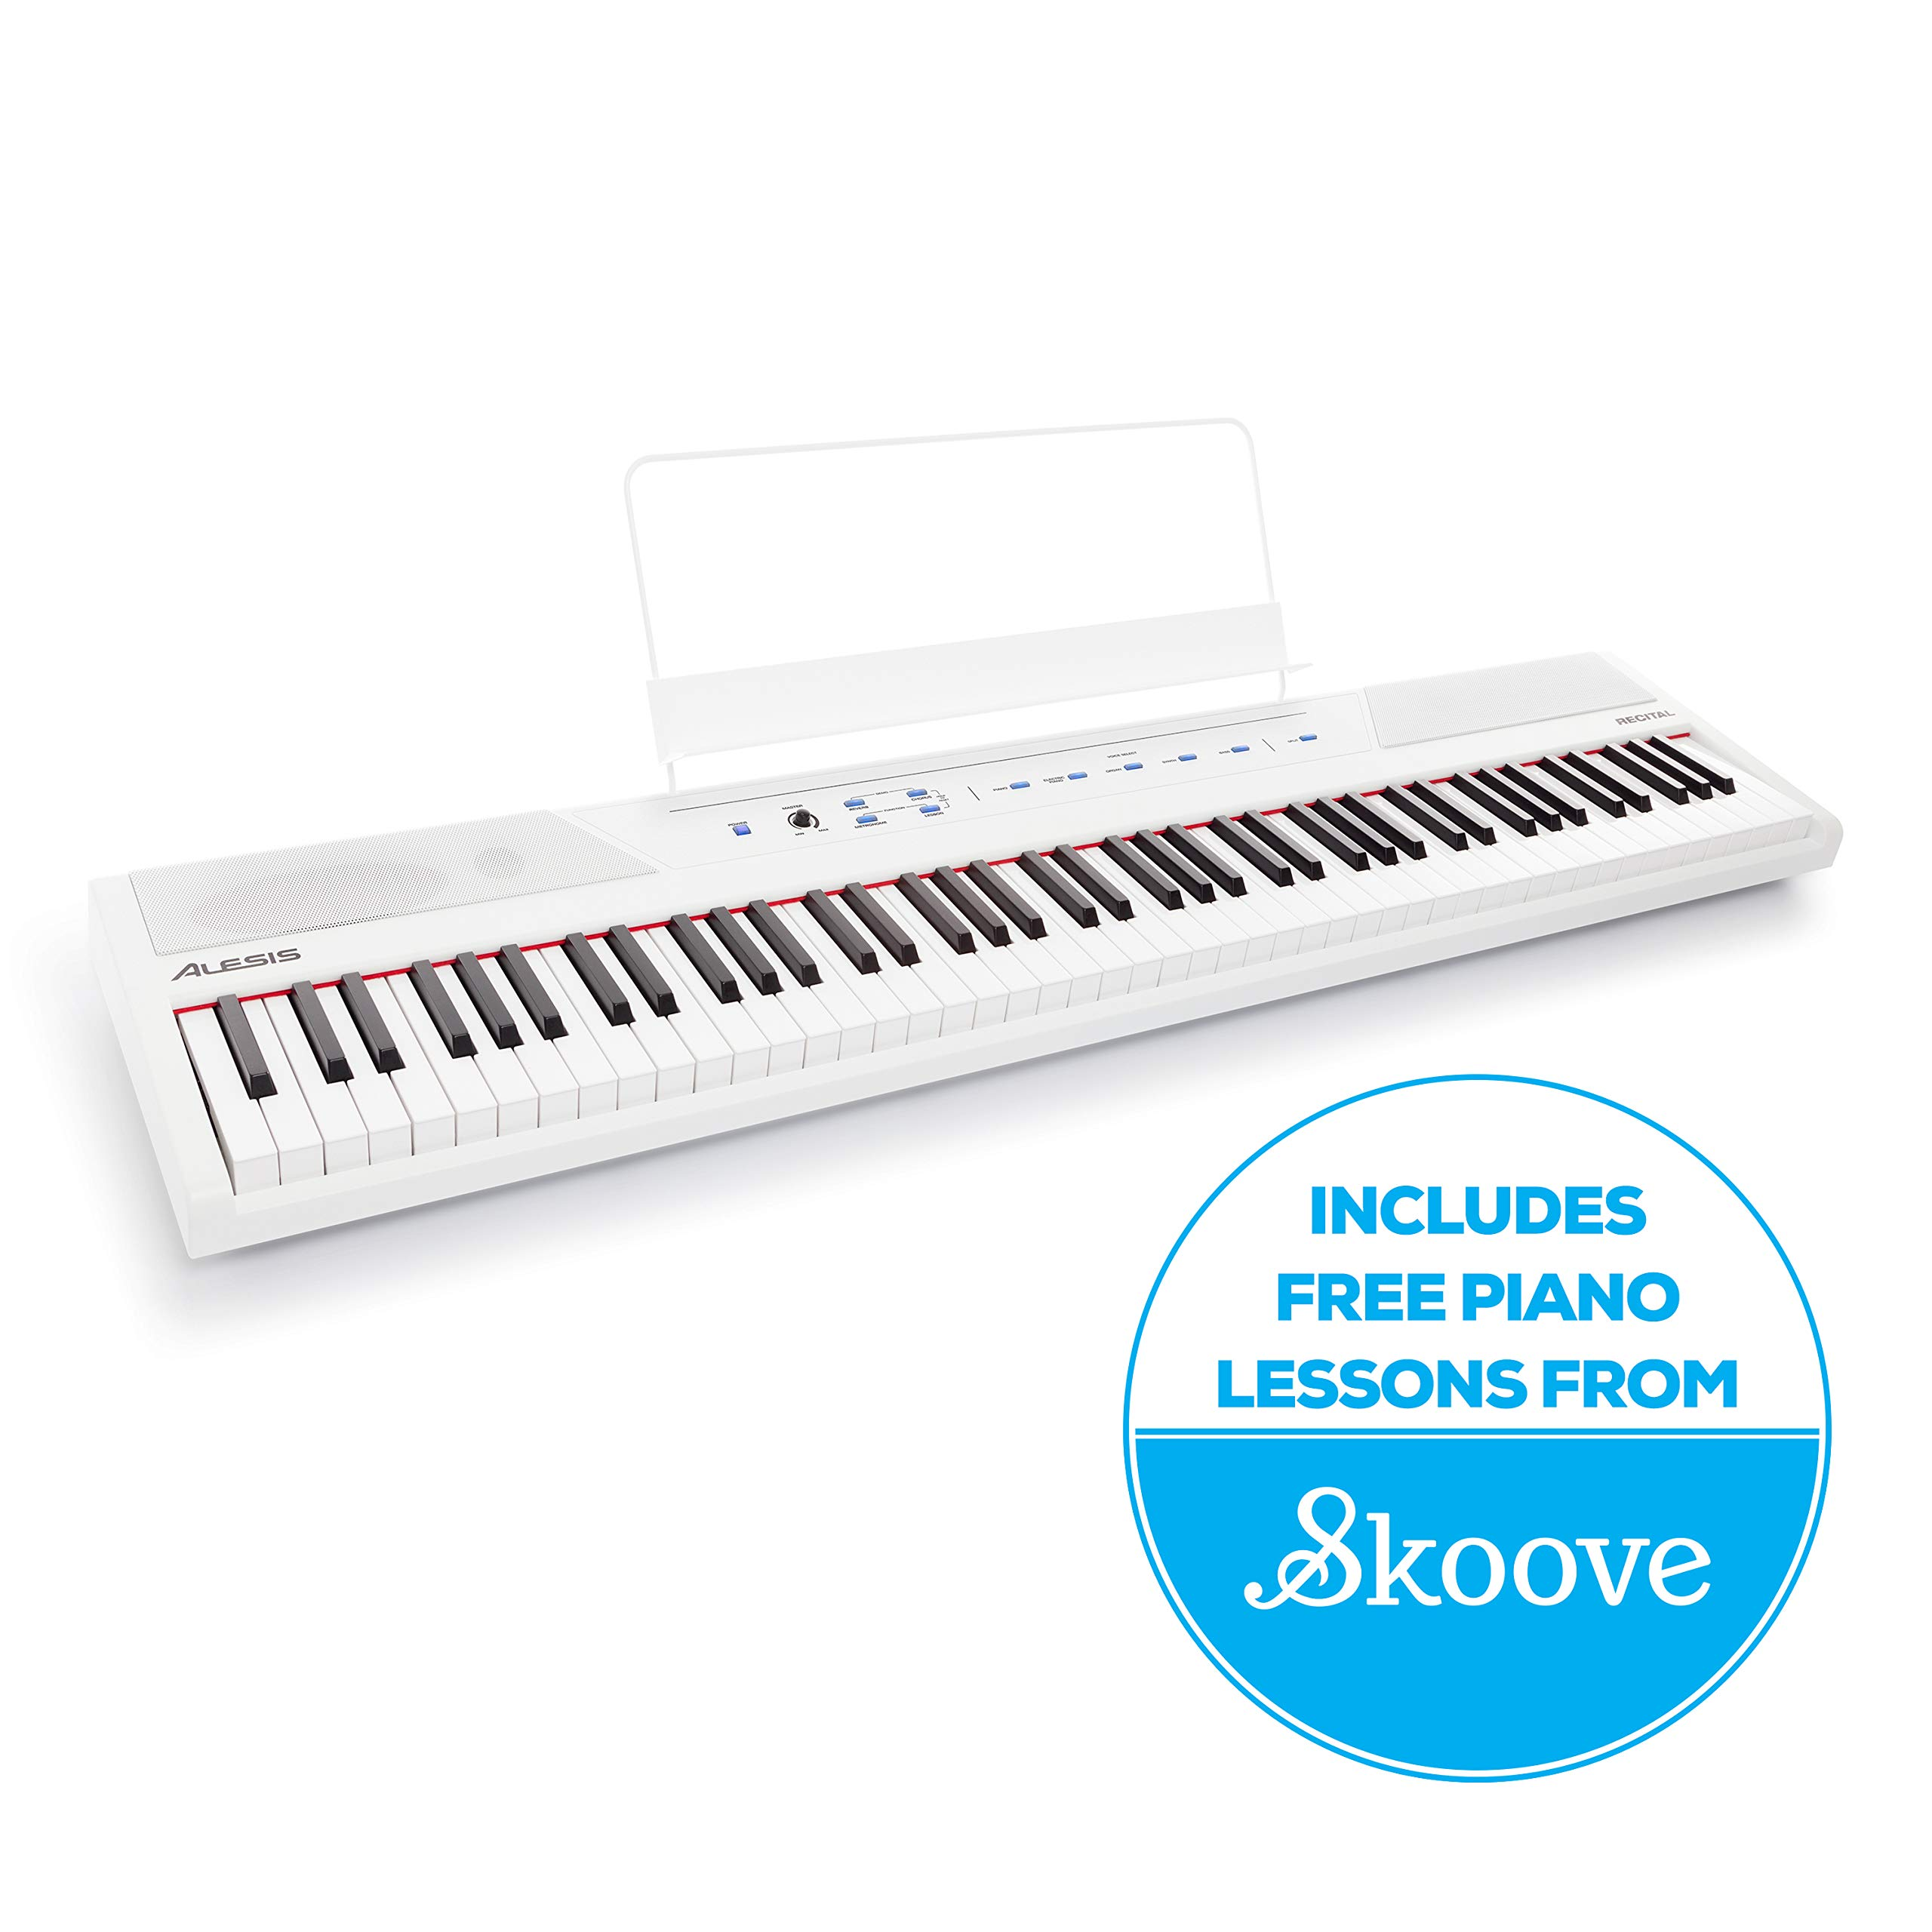 Alesis Recital White | All White 88-Key Digital Piano / Keyboard with Full-Size Semi-Weighted Keys, Power Supply, Built-In Speakers and 5 Premium Voices by Alesis